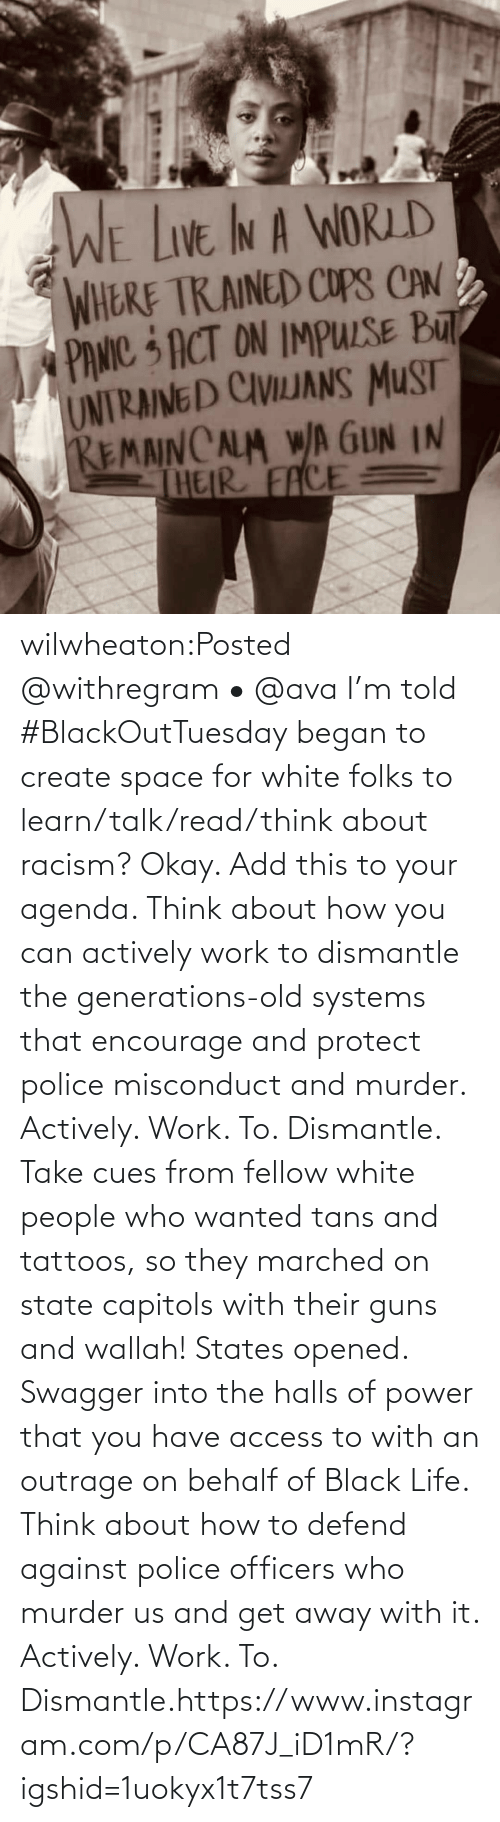 Murder: wilwheaton:Posted @withregram • @ava I'm told #BlackOutTuesday began to create space for white folks to learn/talk/read/think about racism? Okay. Add this to your agenda. Think about how you can actively work to dismantle the generations-old systems that encourage and protect police misconduct and murder. Actively. Work. To. Dismantle. Take cues from fellow white people who wanted tans and tattoos, so they marched on state capitols with their guns and wallah! States opened. Swagger into the halls of power that you have access to with an outrage on behalf of Black Life. Think about how to defend against police officers who murder us and get away with it. Actively. Work. To. Dismantle.https://www.instagram.com/p/CA87J_iD1mR/?igshid=1uokyx1t7tss7